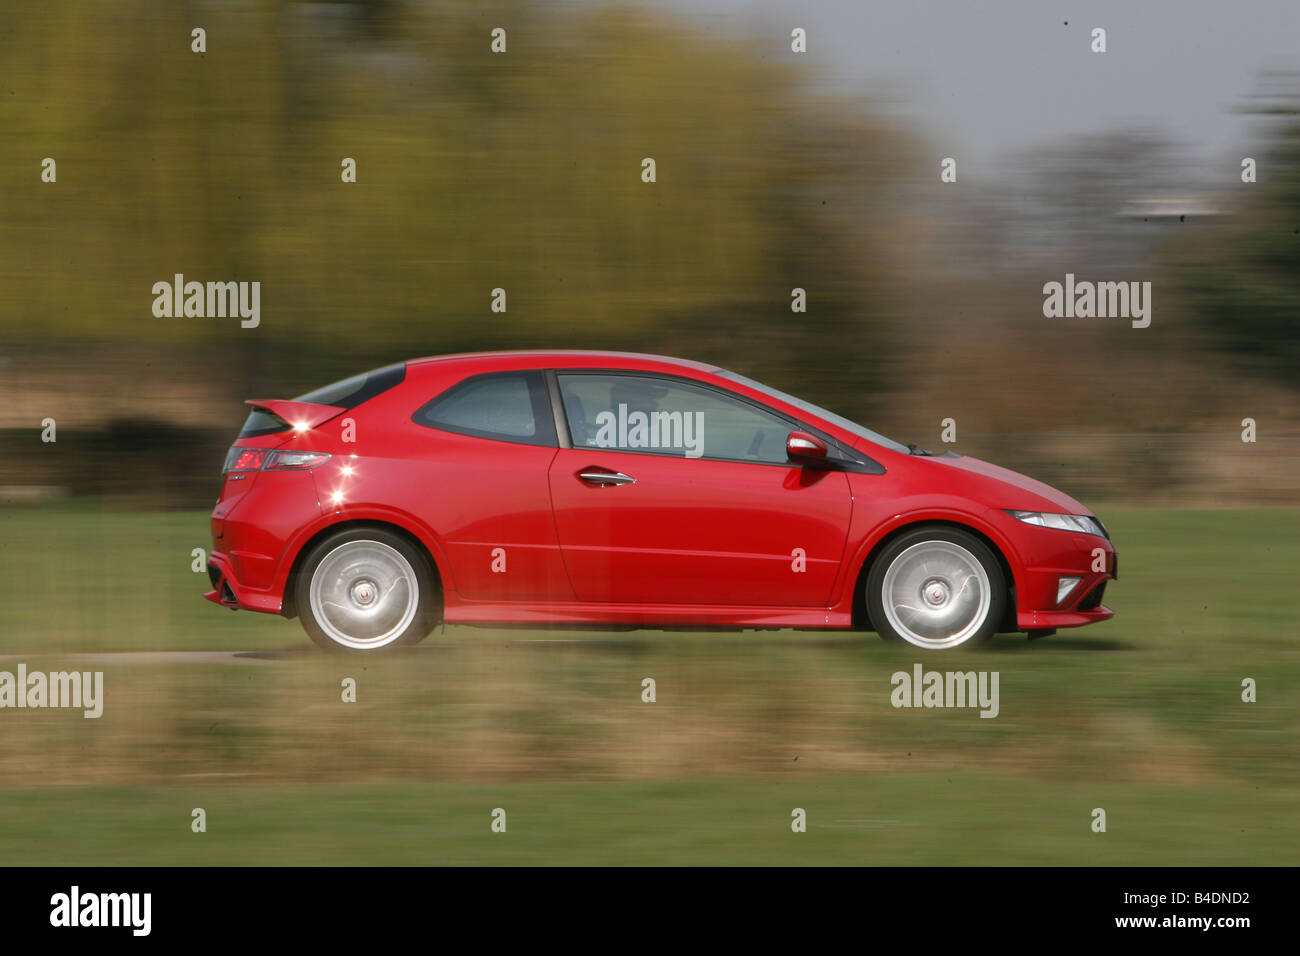 honda civic type r stock photos honda civic type r stock images alamy. Black Bedroom Furniture Sets. Home Design Ideas